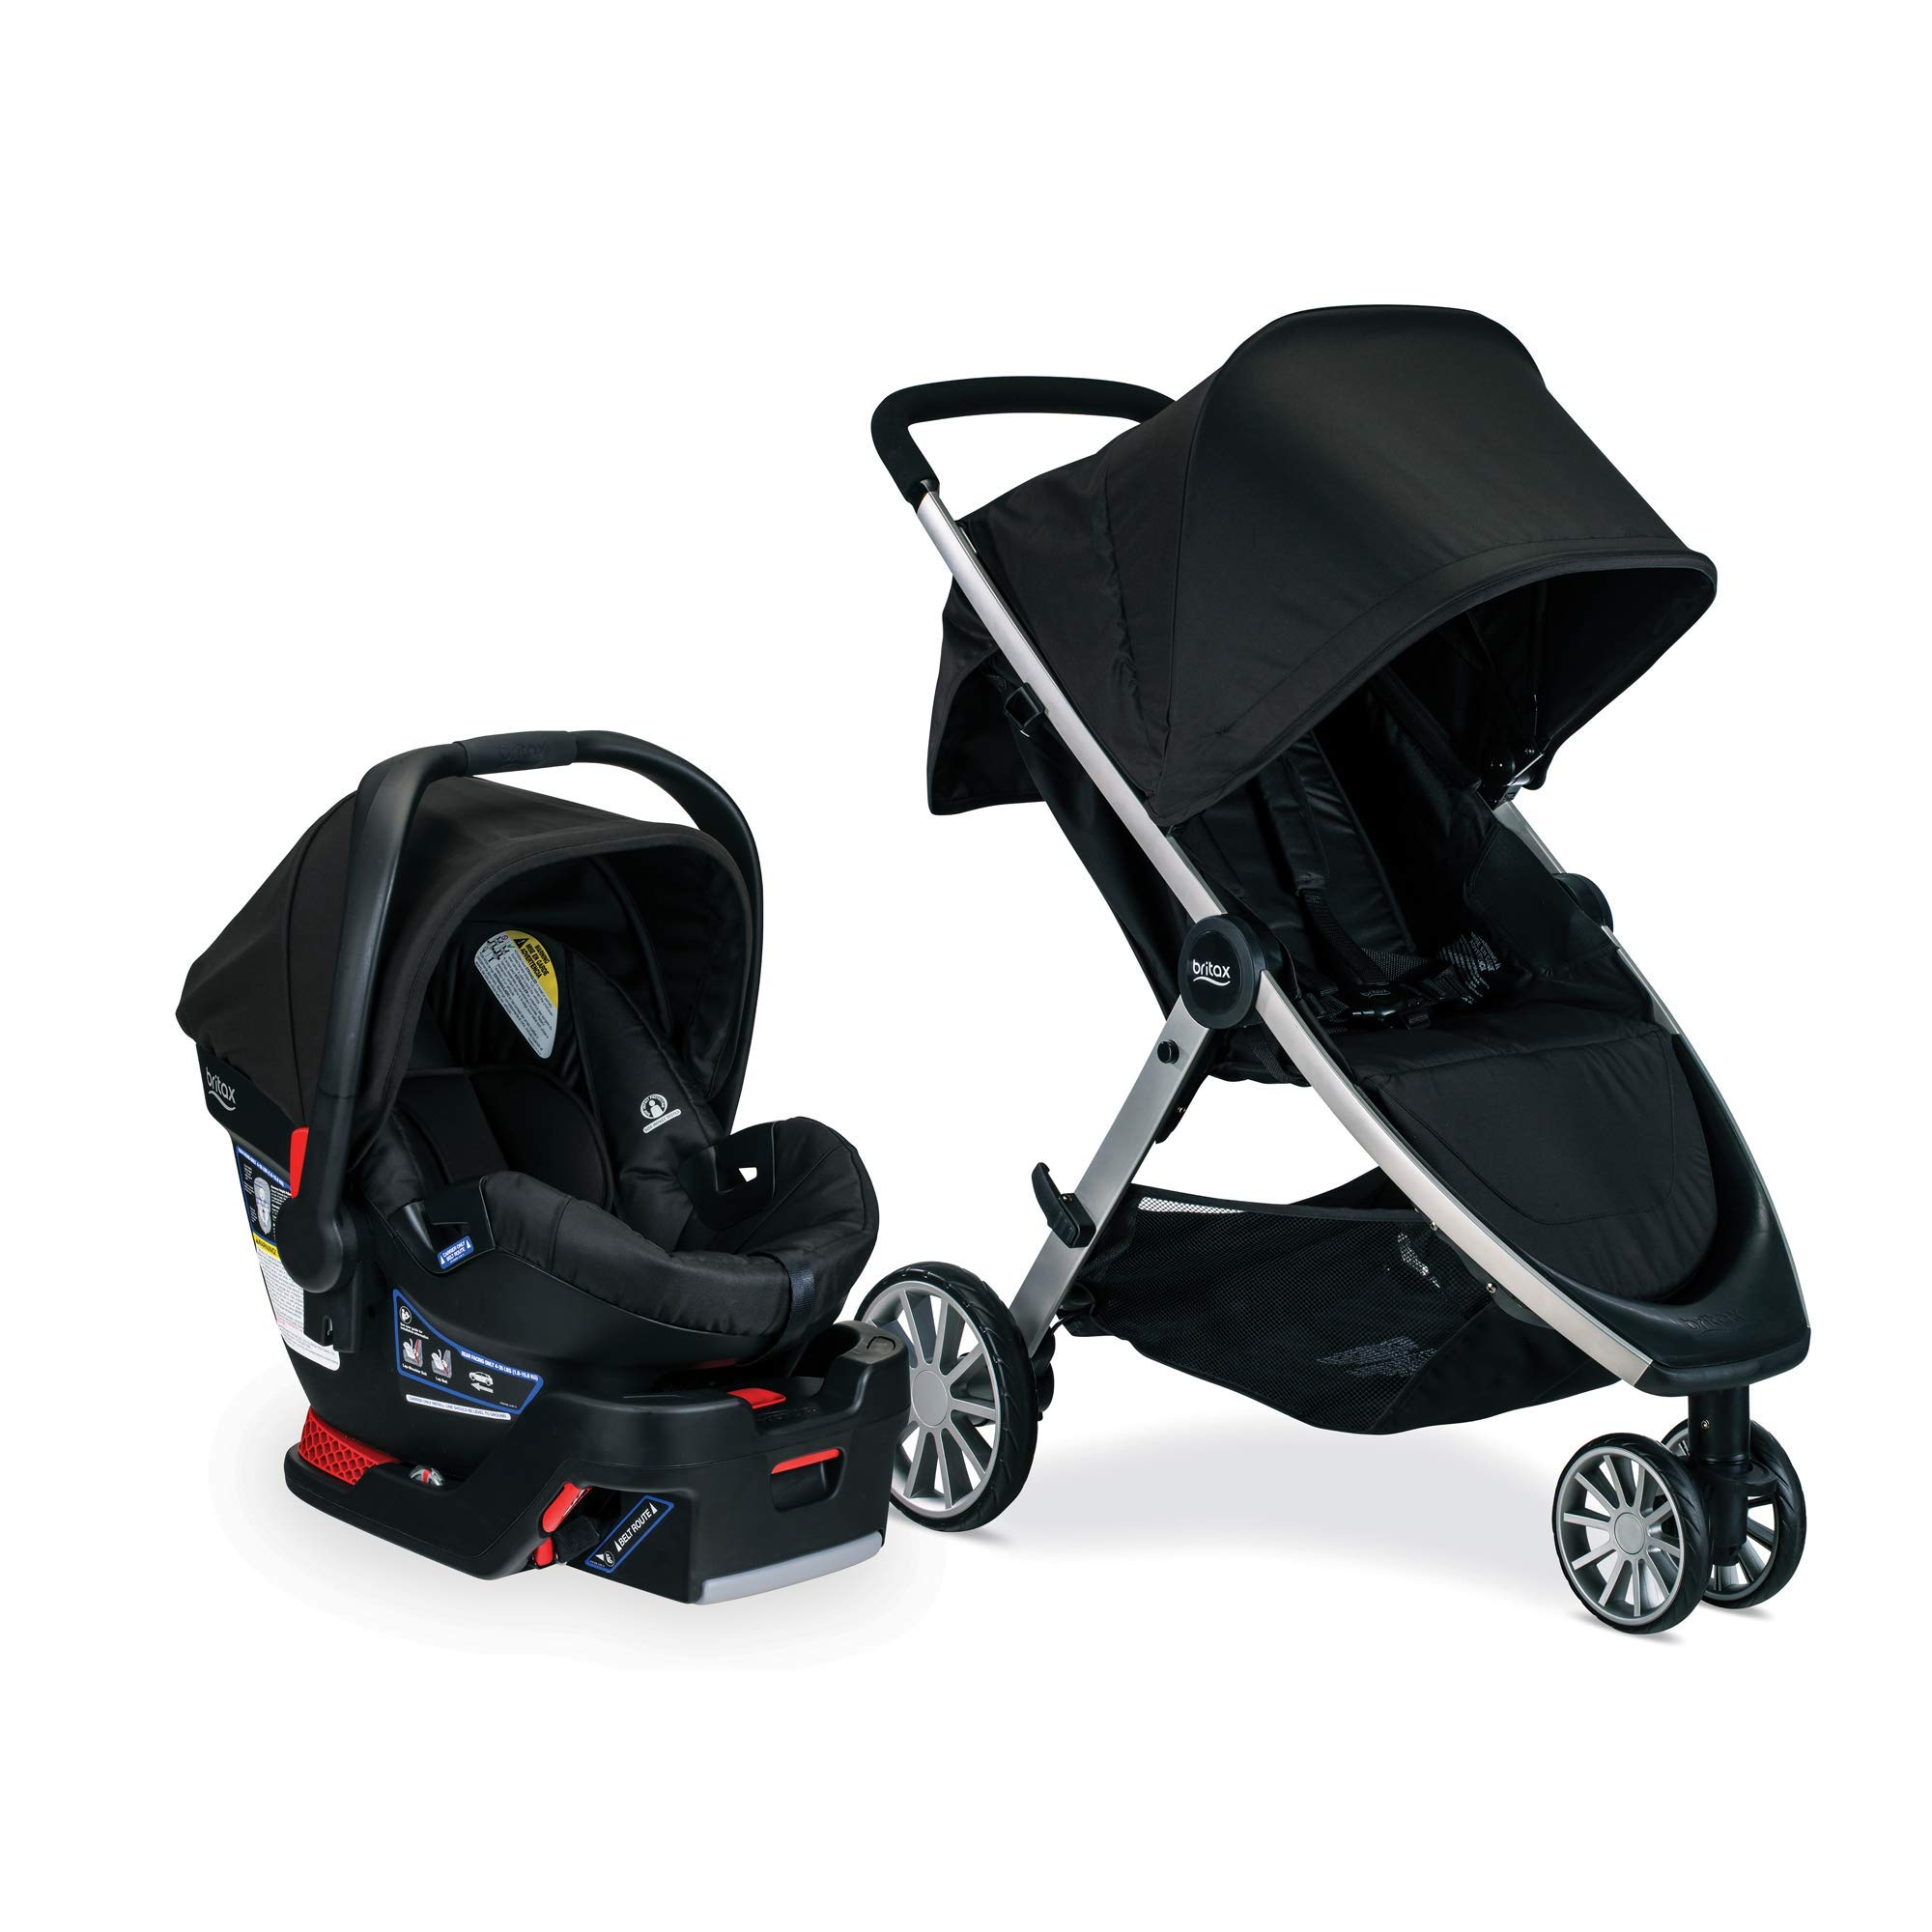 Britax Travel System - B-Lively Stroller & B-Safe 35 Infant Car Seat - 4 to 55 Pounds, Raven